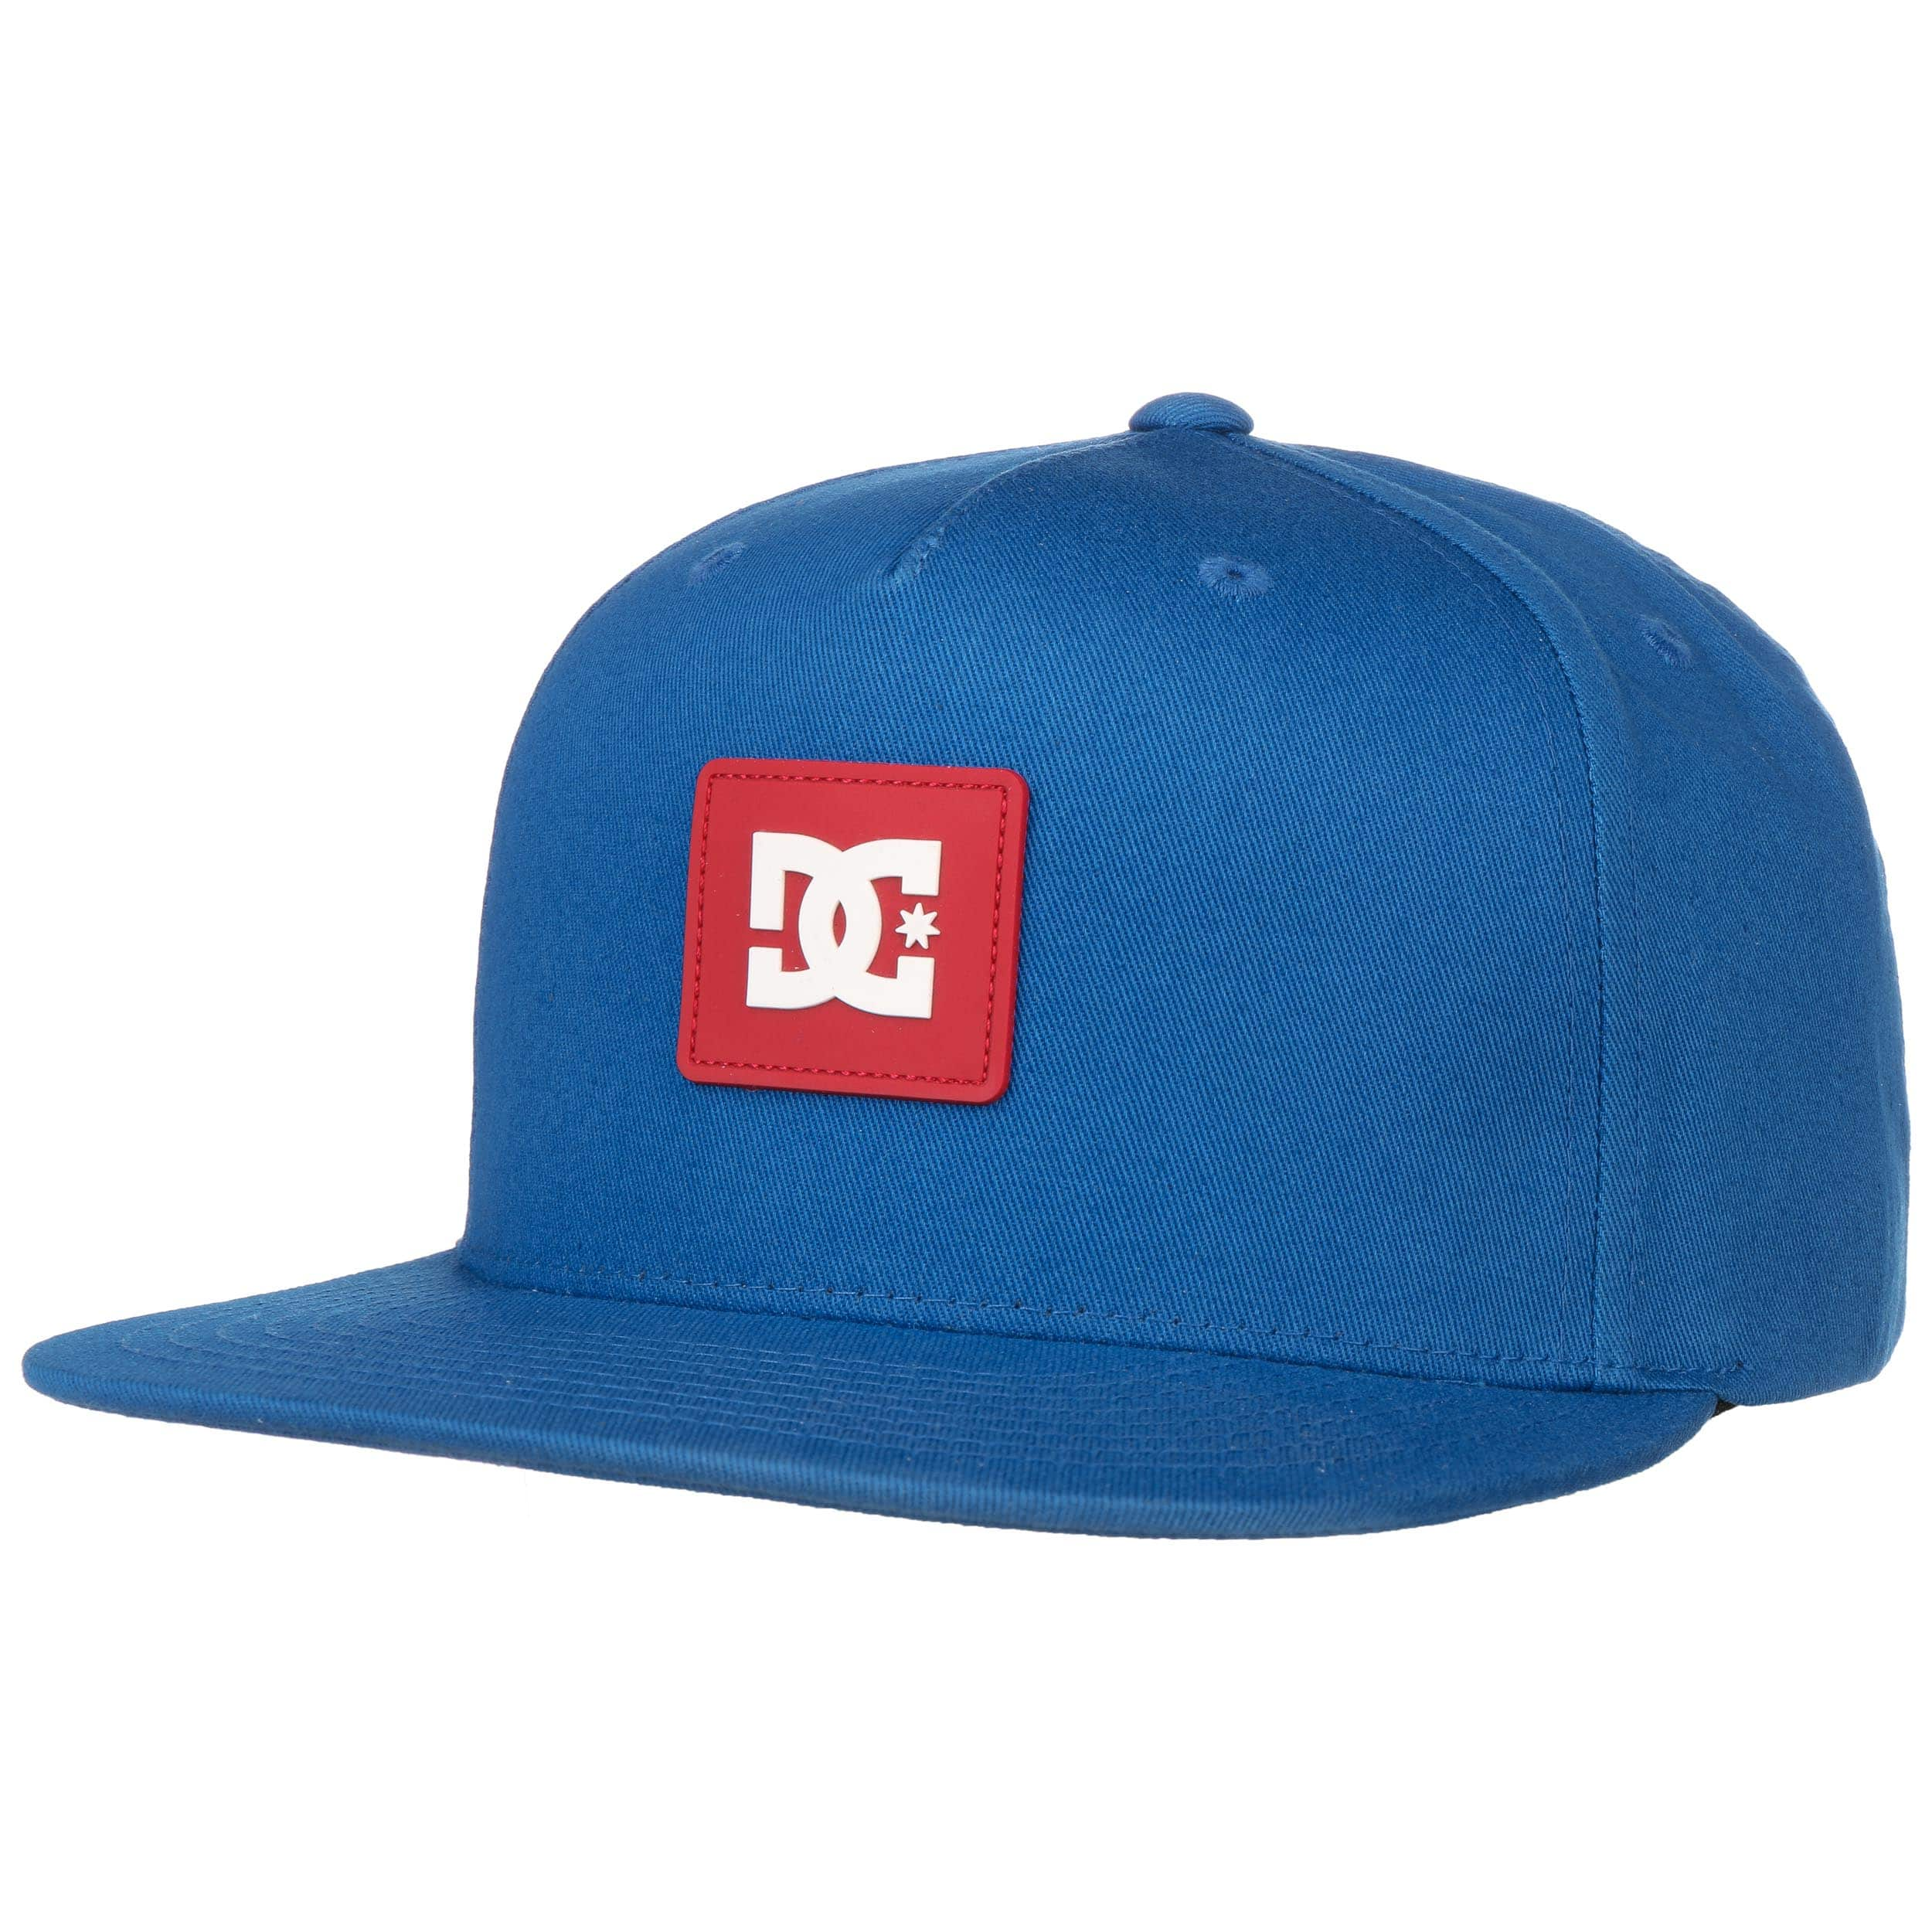 148ef77ad04 ... Snapdoodle Snapback by DC Shoes Co - 1